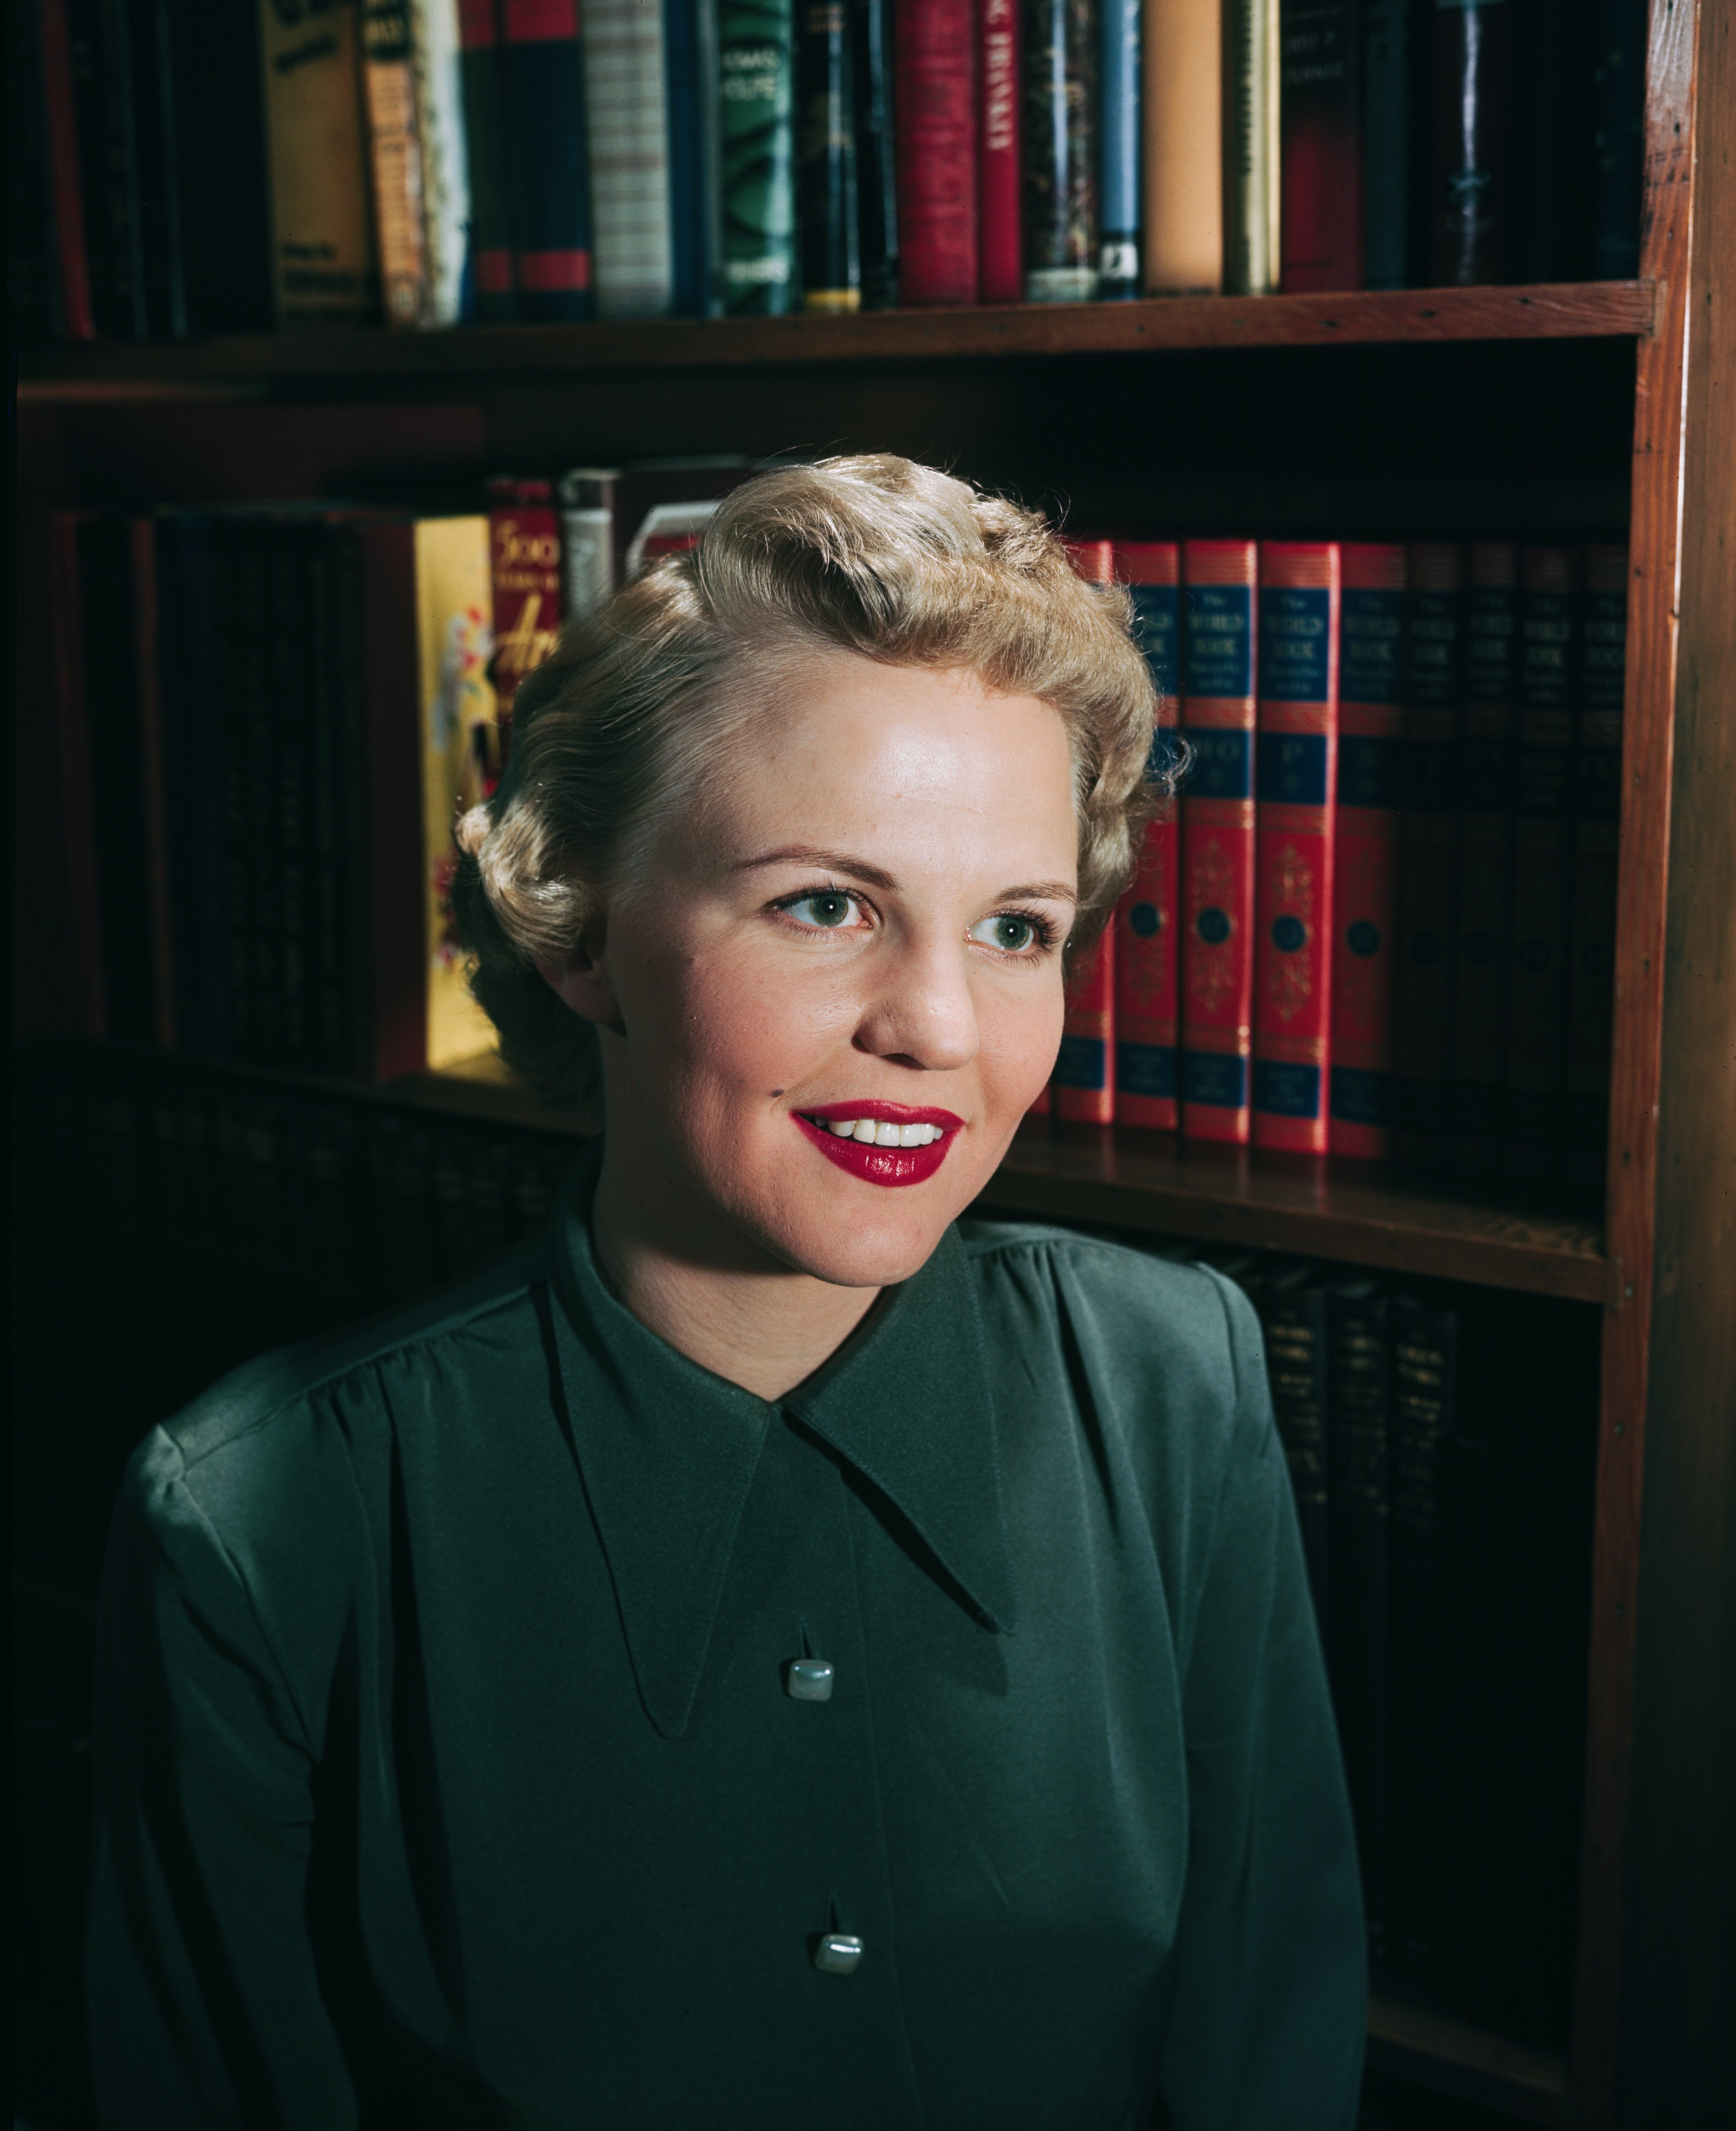 American jazz and pop singer Peggy Lee (1920 - 2002), circa 1950 | Photo: Getty Images